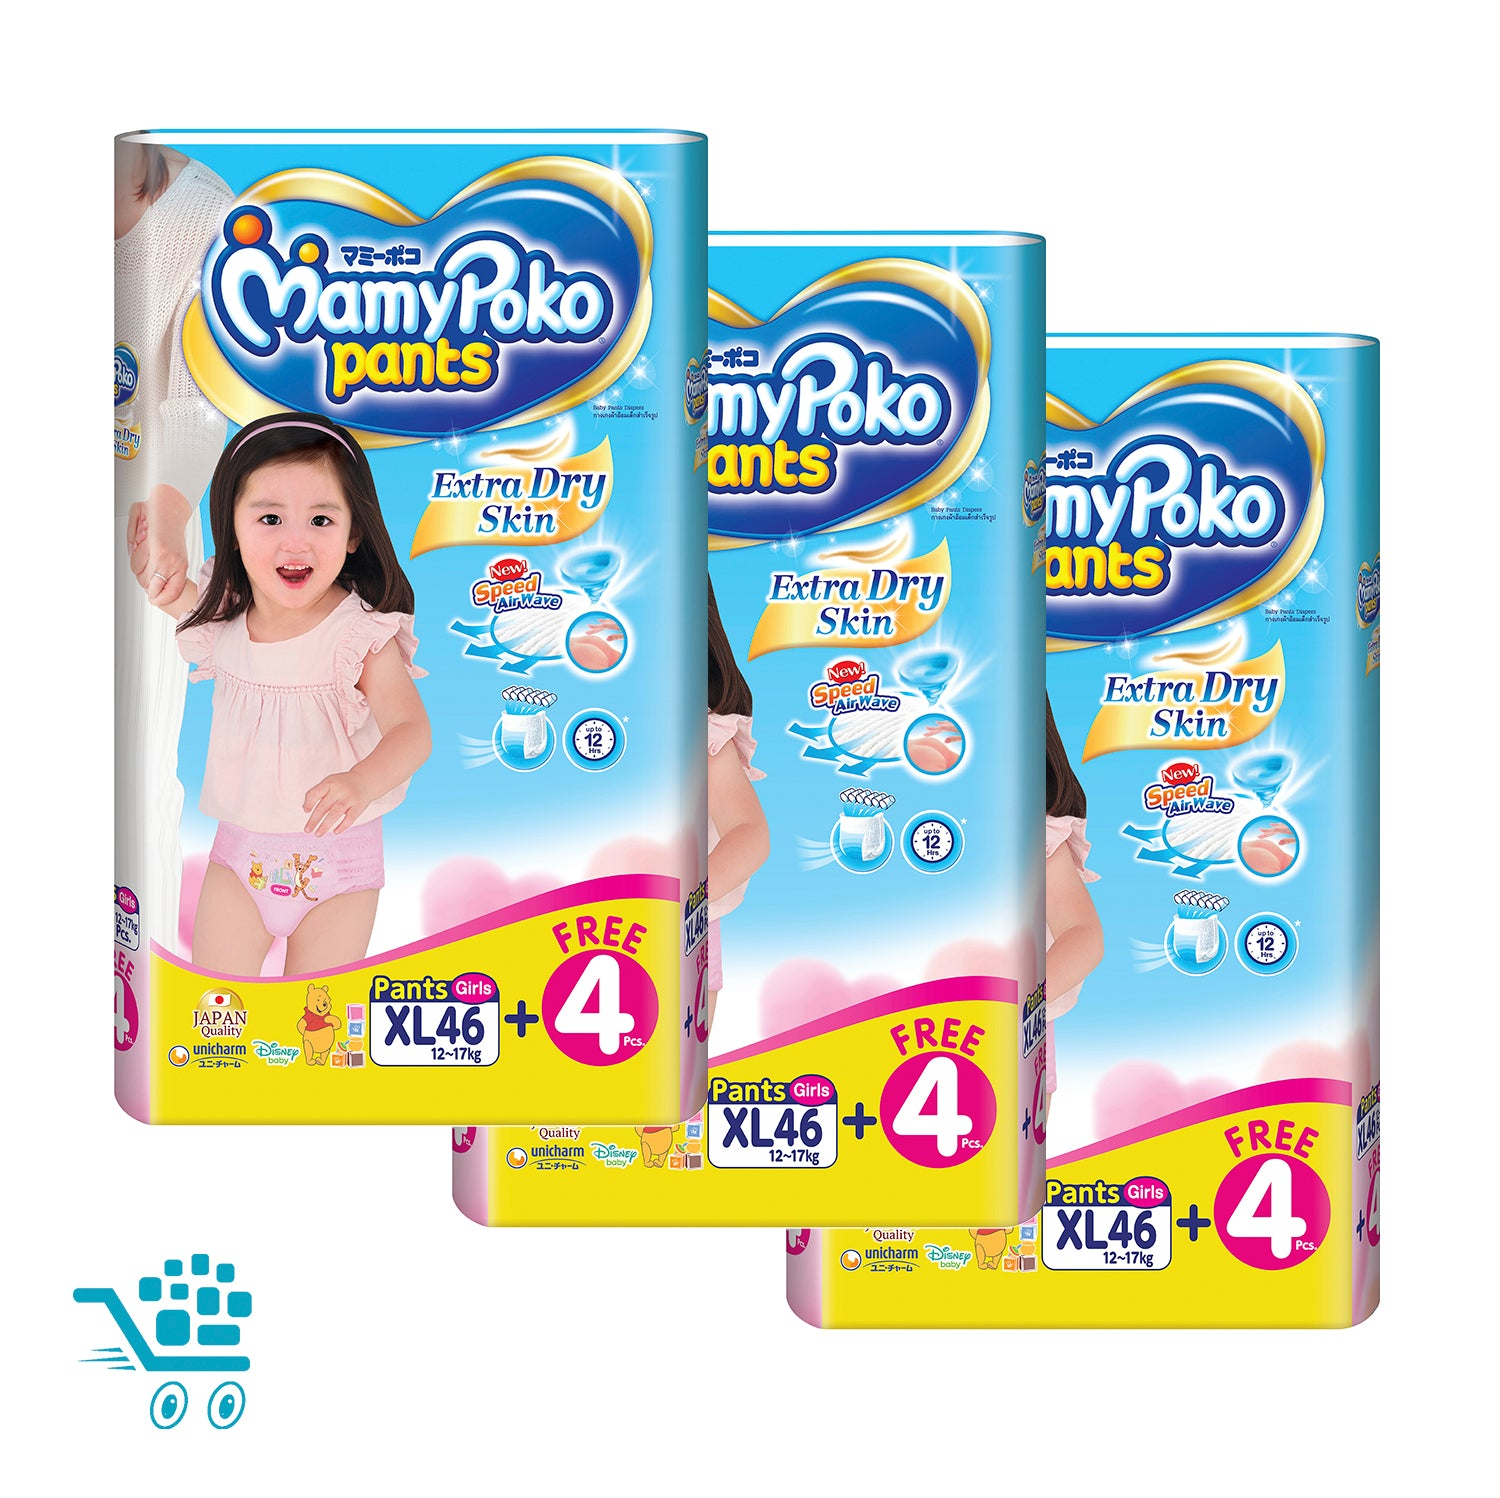 MamyPoko Extra Dry Skin Pants Bonus Pack Girl XL 46+4 pieces x 3 packs